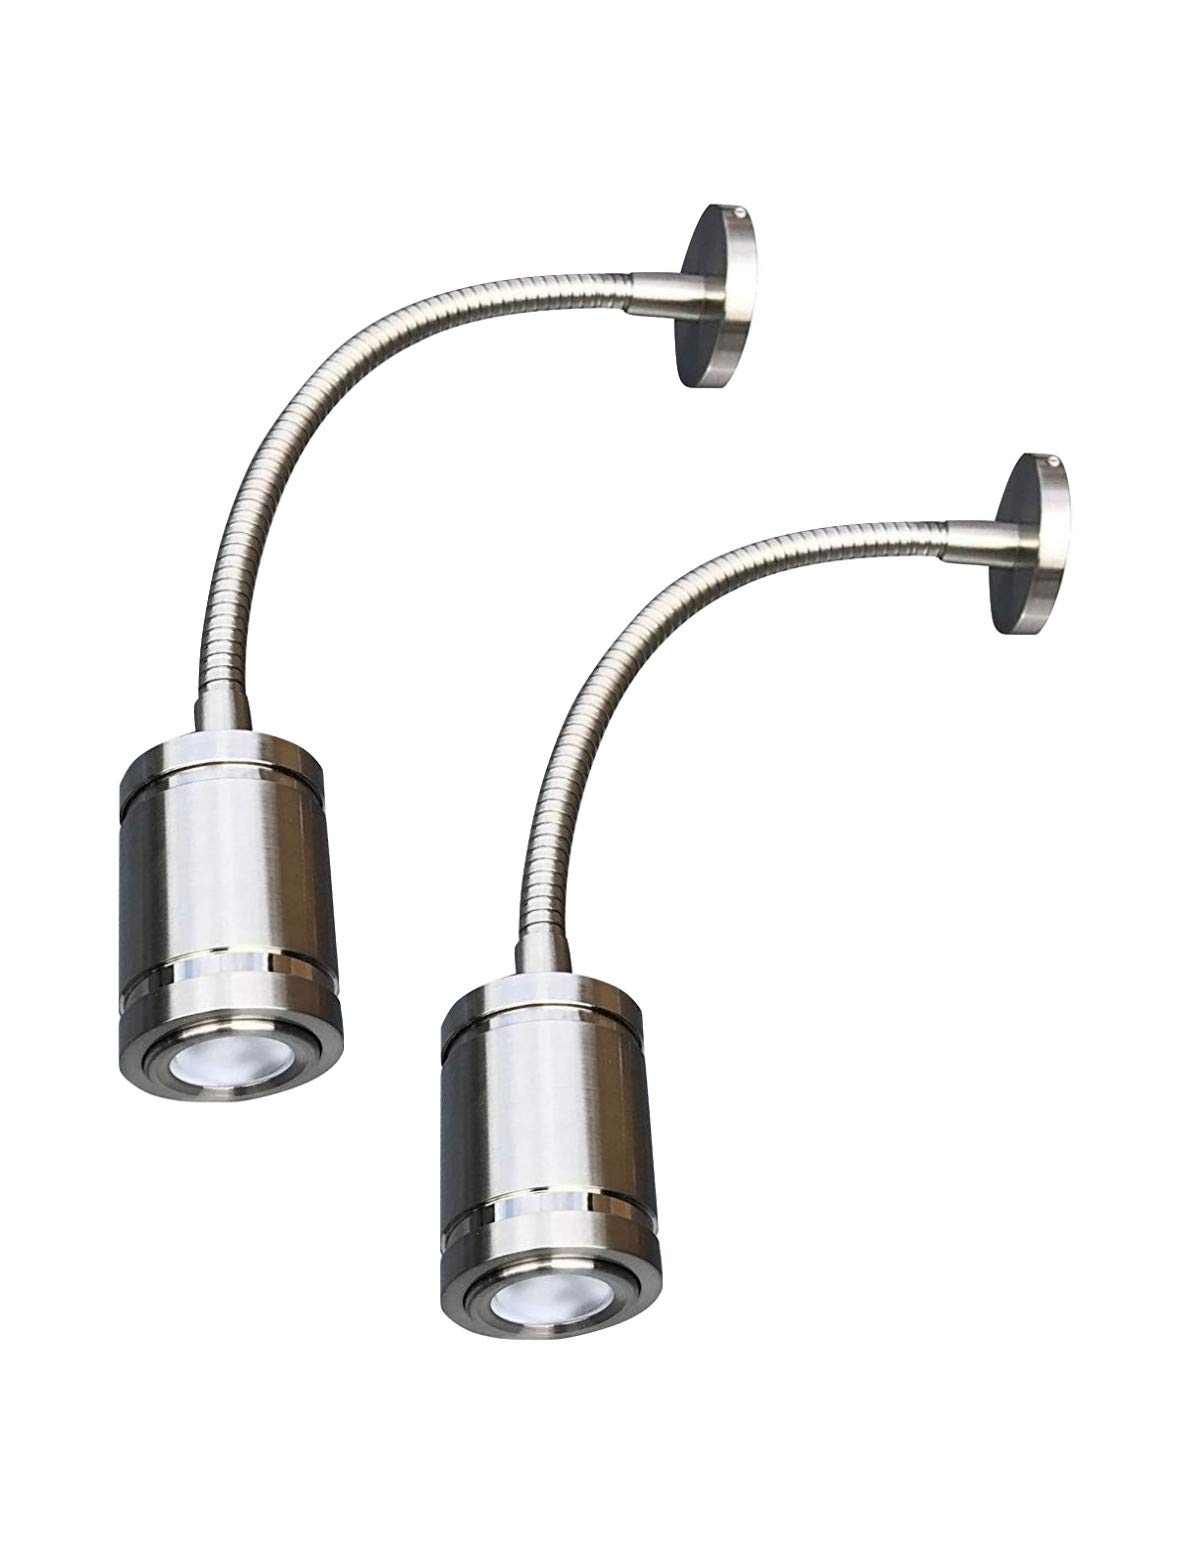 LIGHTEU 12V Reading Light RV LED Interior Gooseneck with Switch, Professional Flexible,Wall Light for Bedside, Boat, Yacht, and Caravan, Exquisite 2 Pack (2Long-Nickel) by lighteu